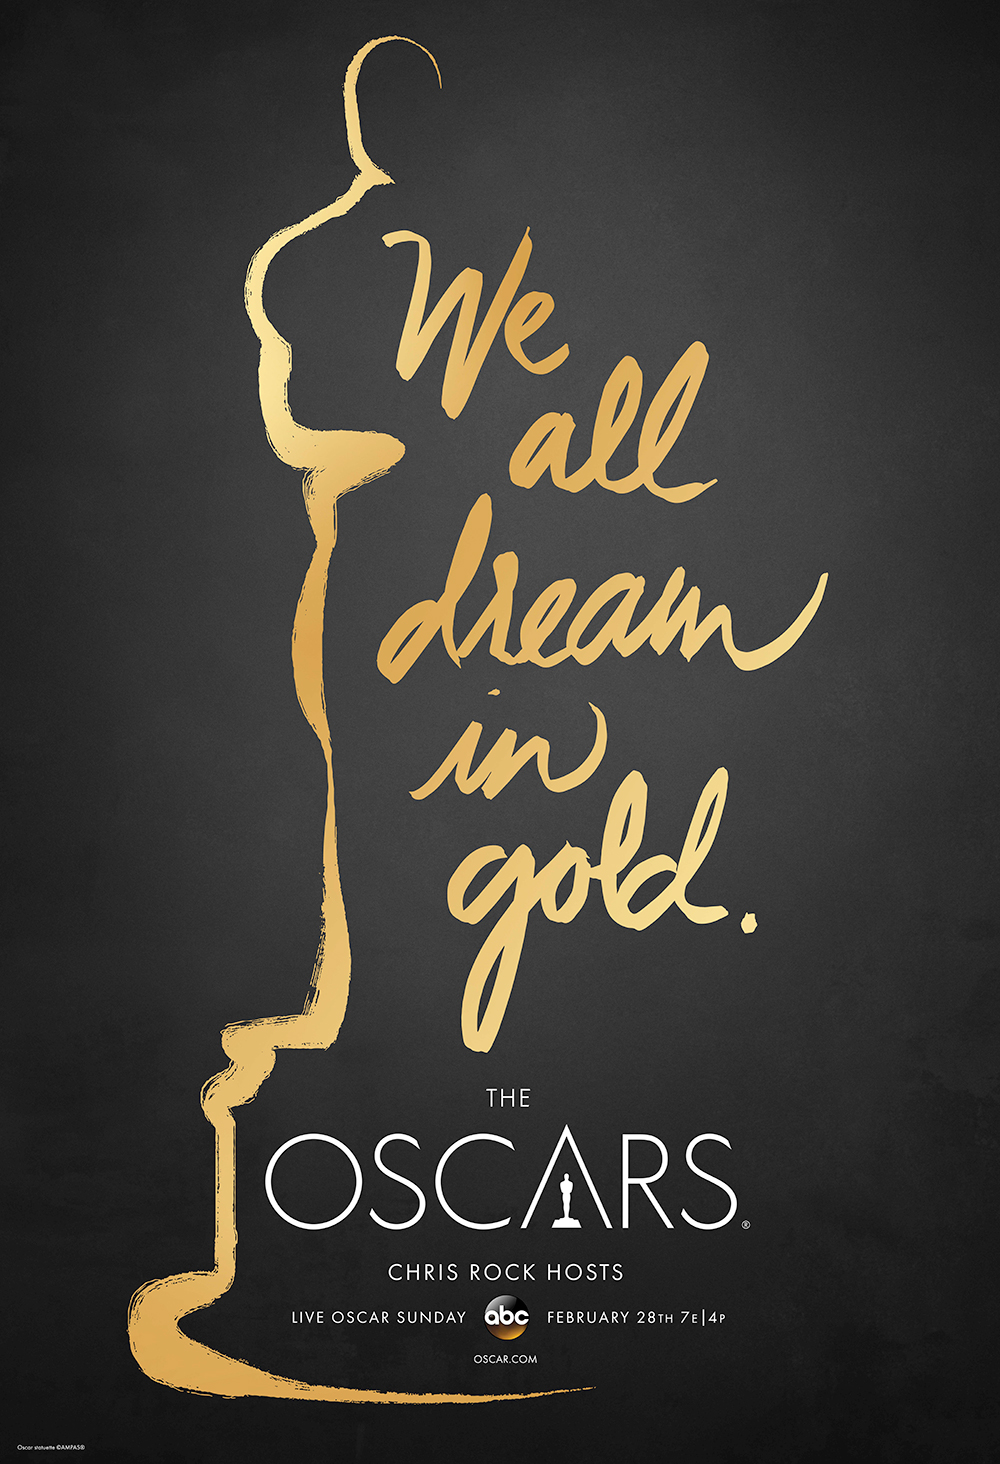 Oscar-DreamGold-Poster